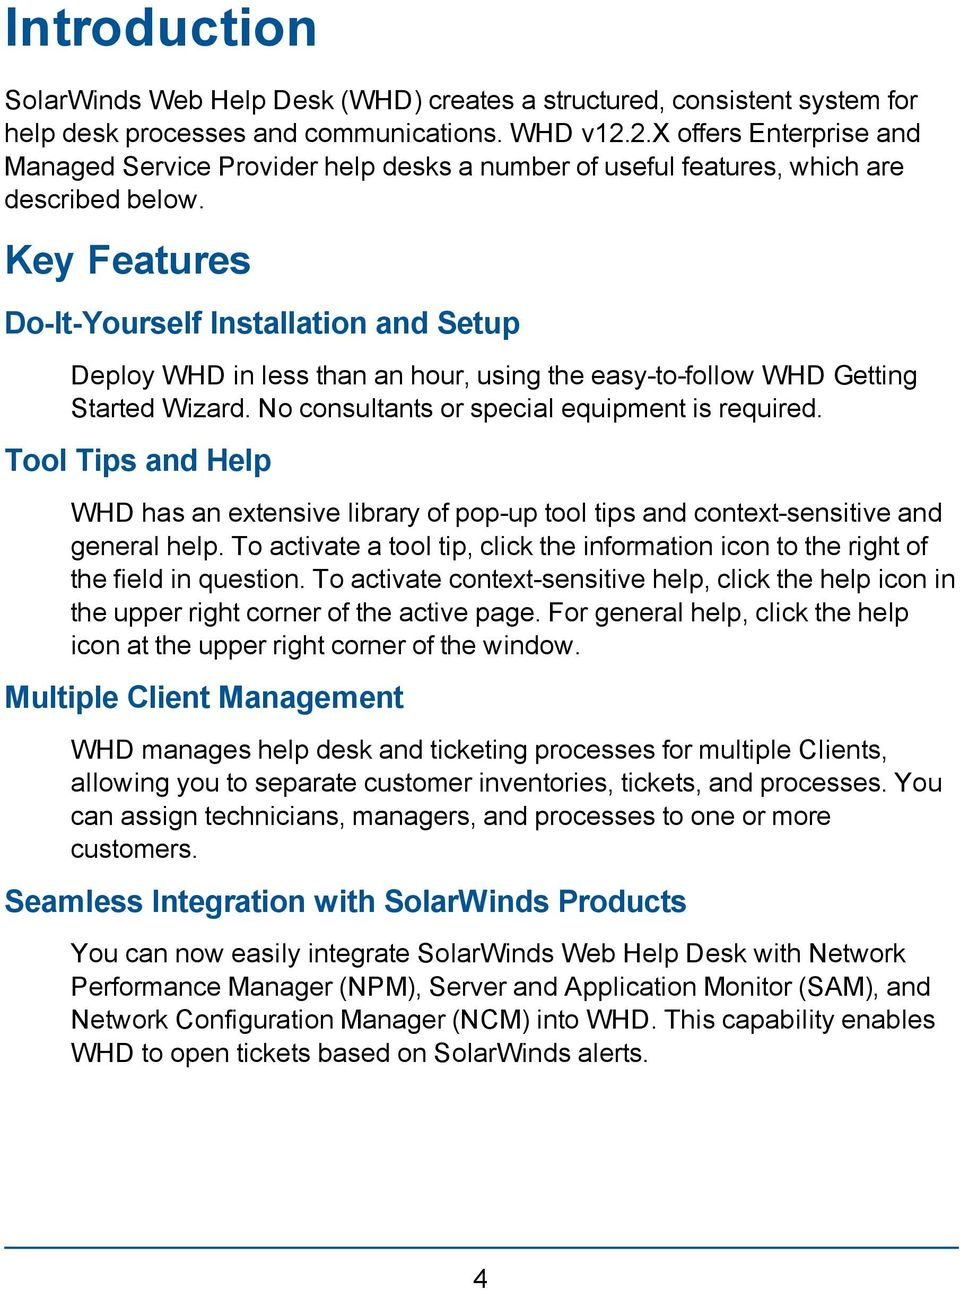 Key Features Do-It-Yourself Installation and Setup Deploy WHD in less than an hour, using the easy-to-follow WHD Getting Started Wizard. No consultants or special equipment is required.